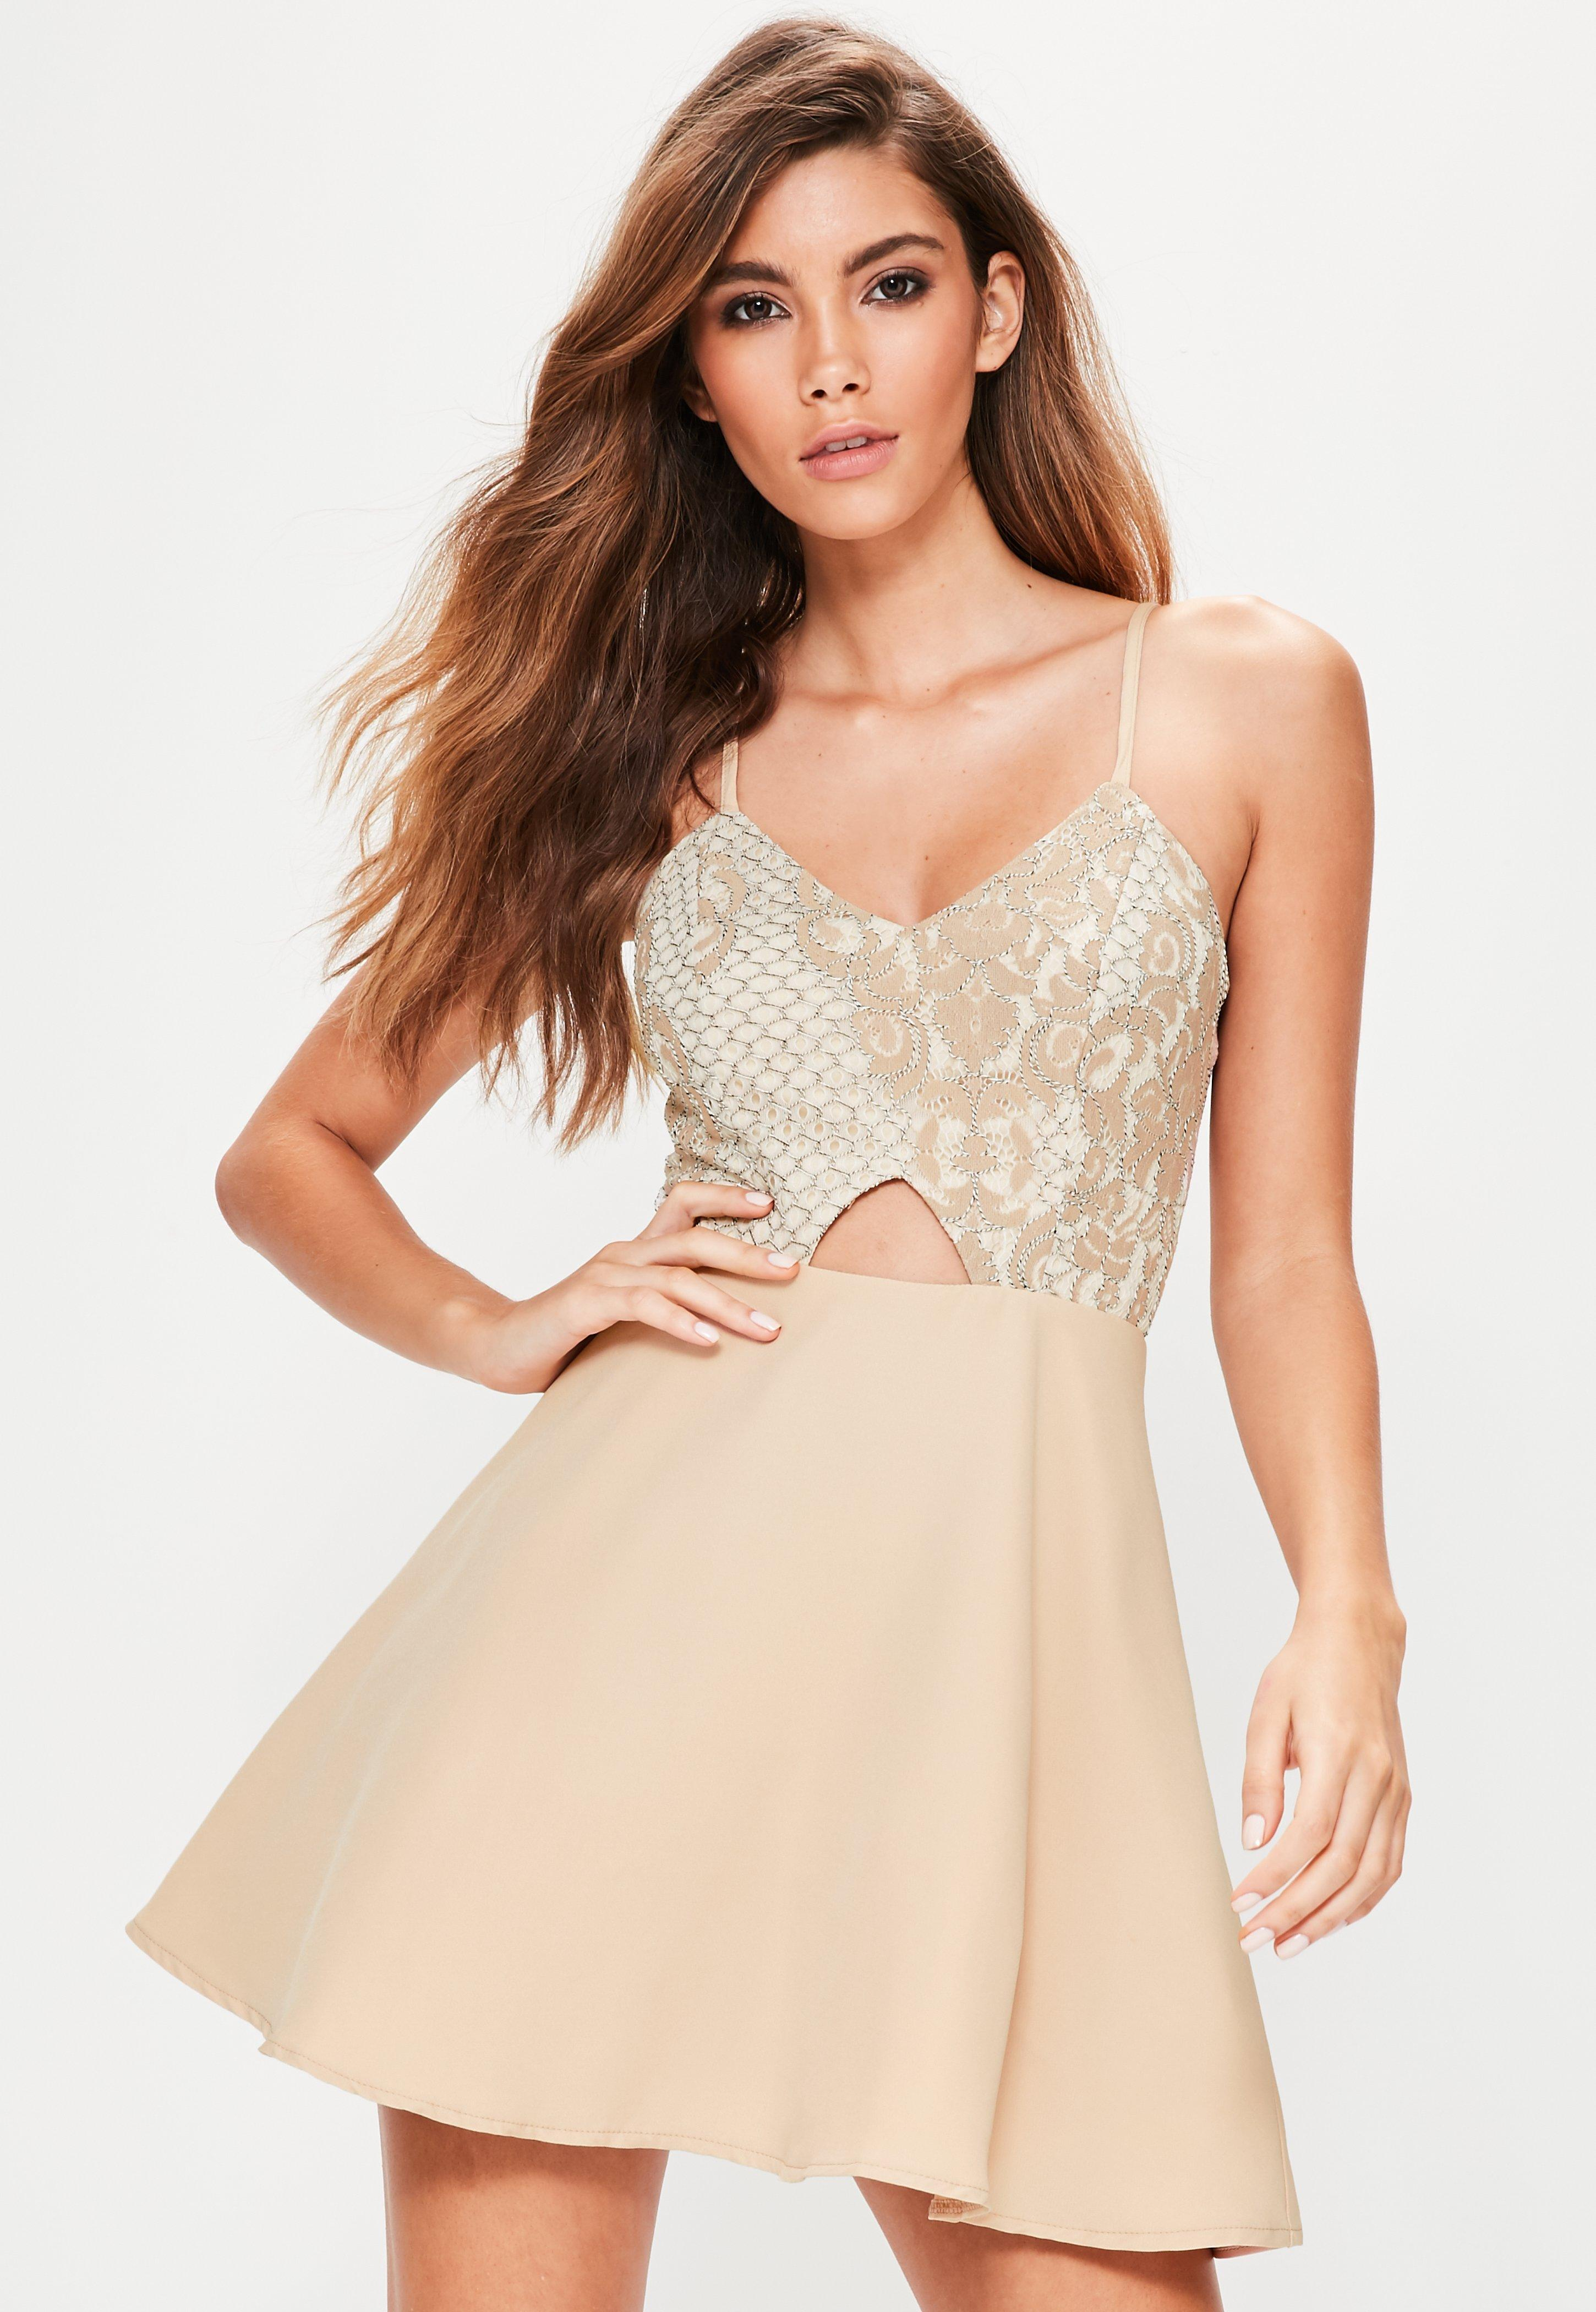 Lyst - Missguided Nude Lace Skater Dress in Natural d1fdc9e1e